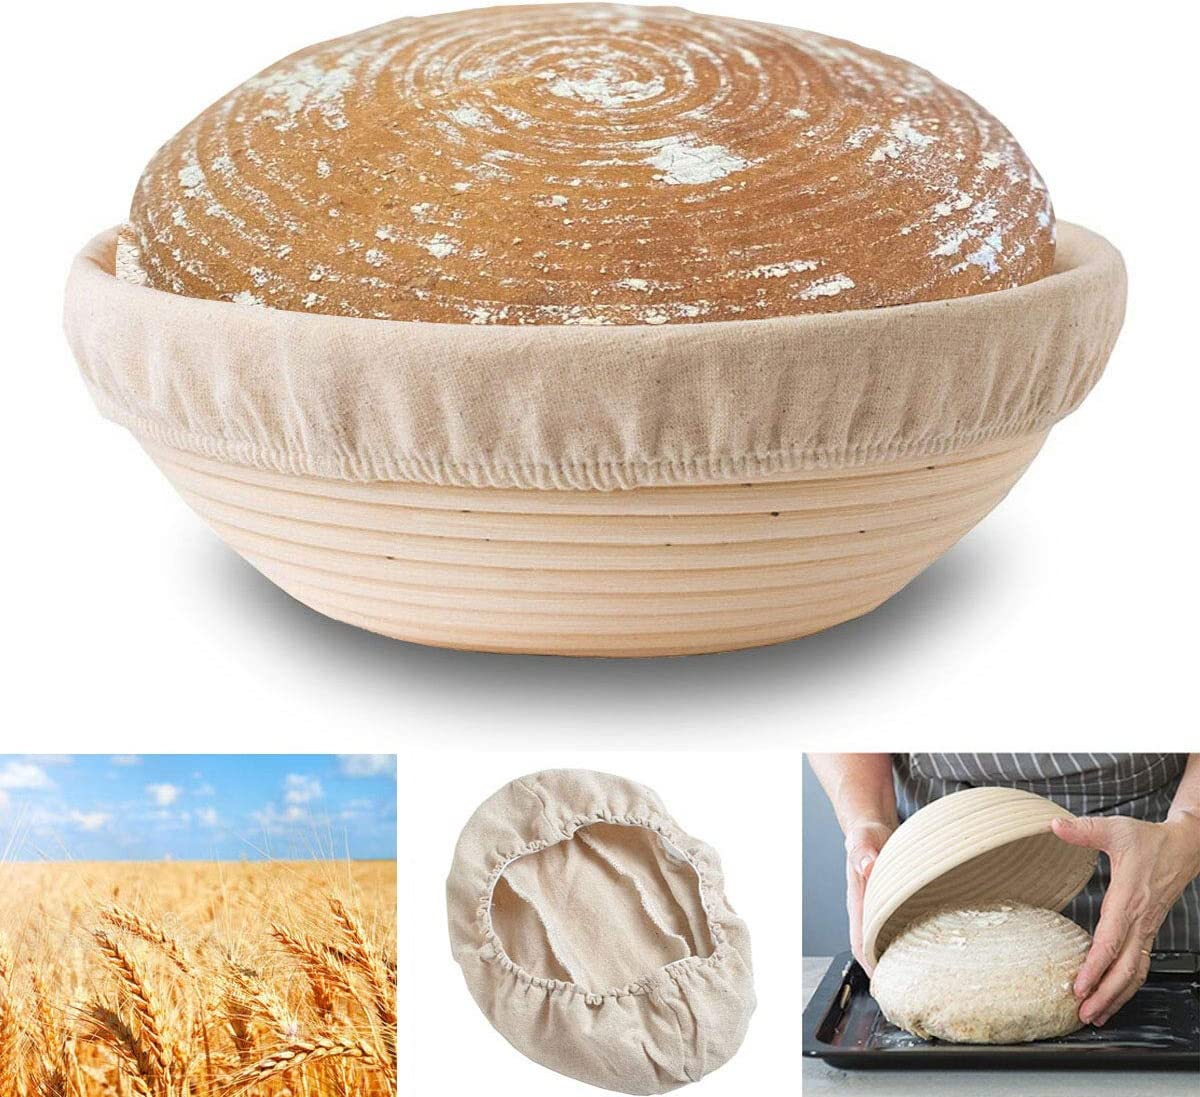 9-inch-Round 5 piece for Professional /& Home Bakers Binano Bread proofing basket Round or Oval basket+ Brush+Bread Knife+Dough Scraper+Linen Liner Cloth Proofing baskets for bread baking